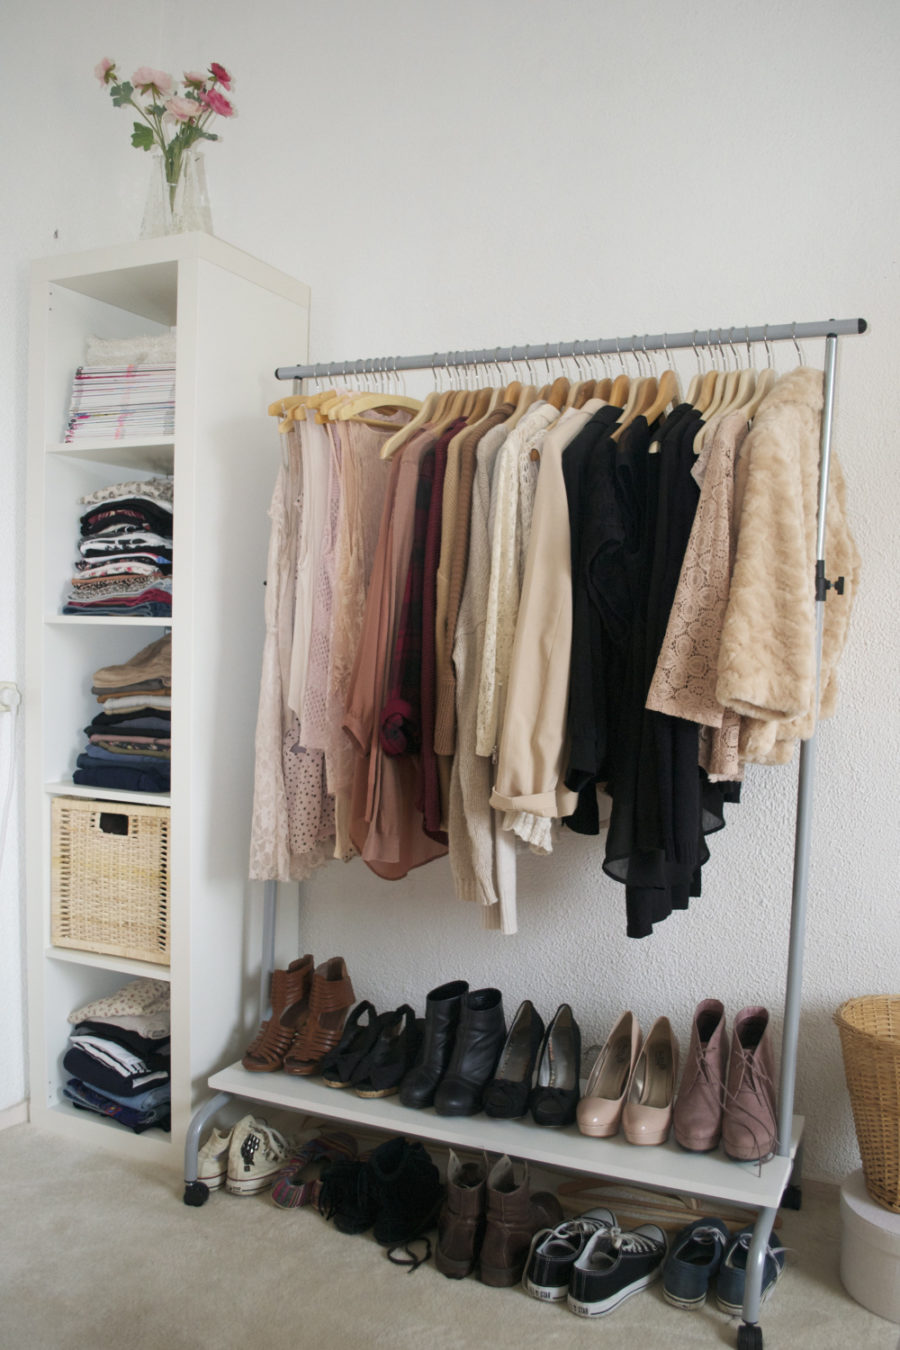 Here Are 30 Stunning Open Closet Ideas For Inspiration That Will Help You  Plan And Display Your Wardrobe Beautifully And Correctly.